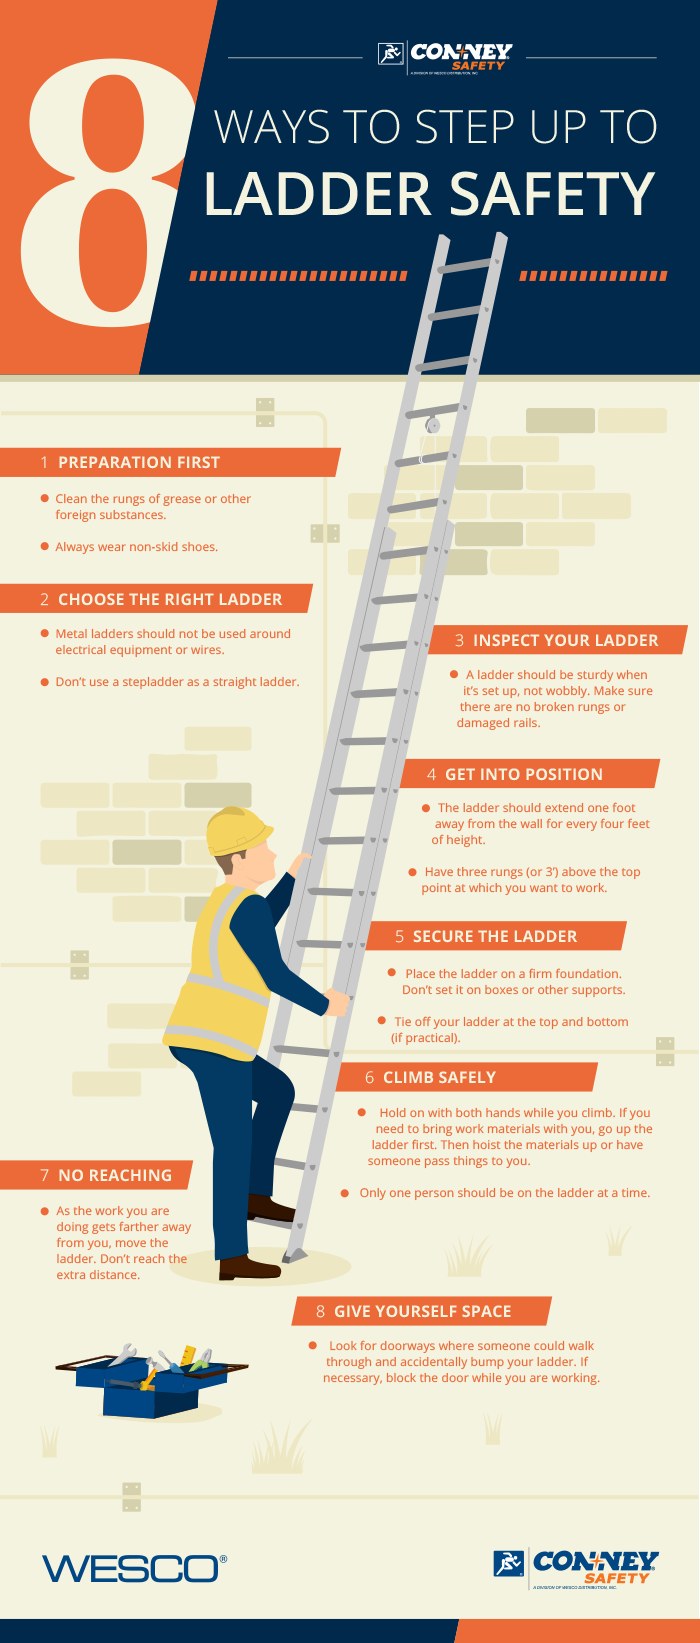 Conney-LadderSafety-Infographic-170717-Final.png